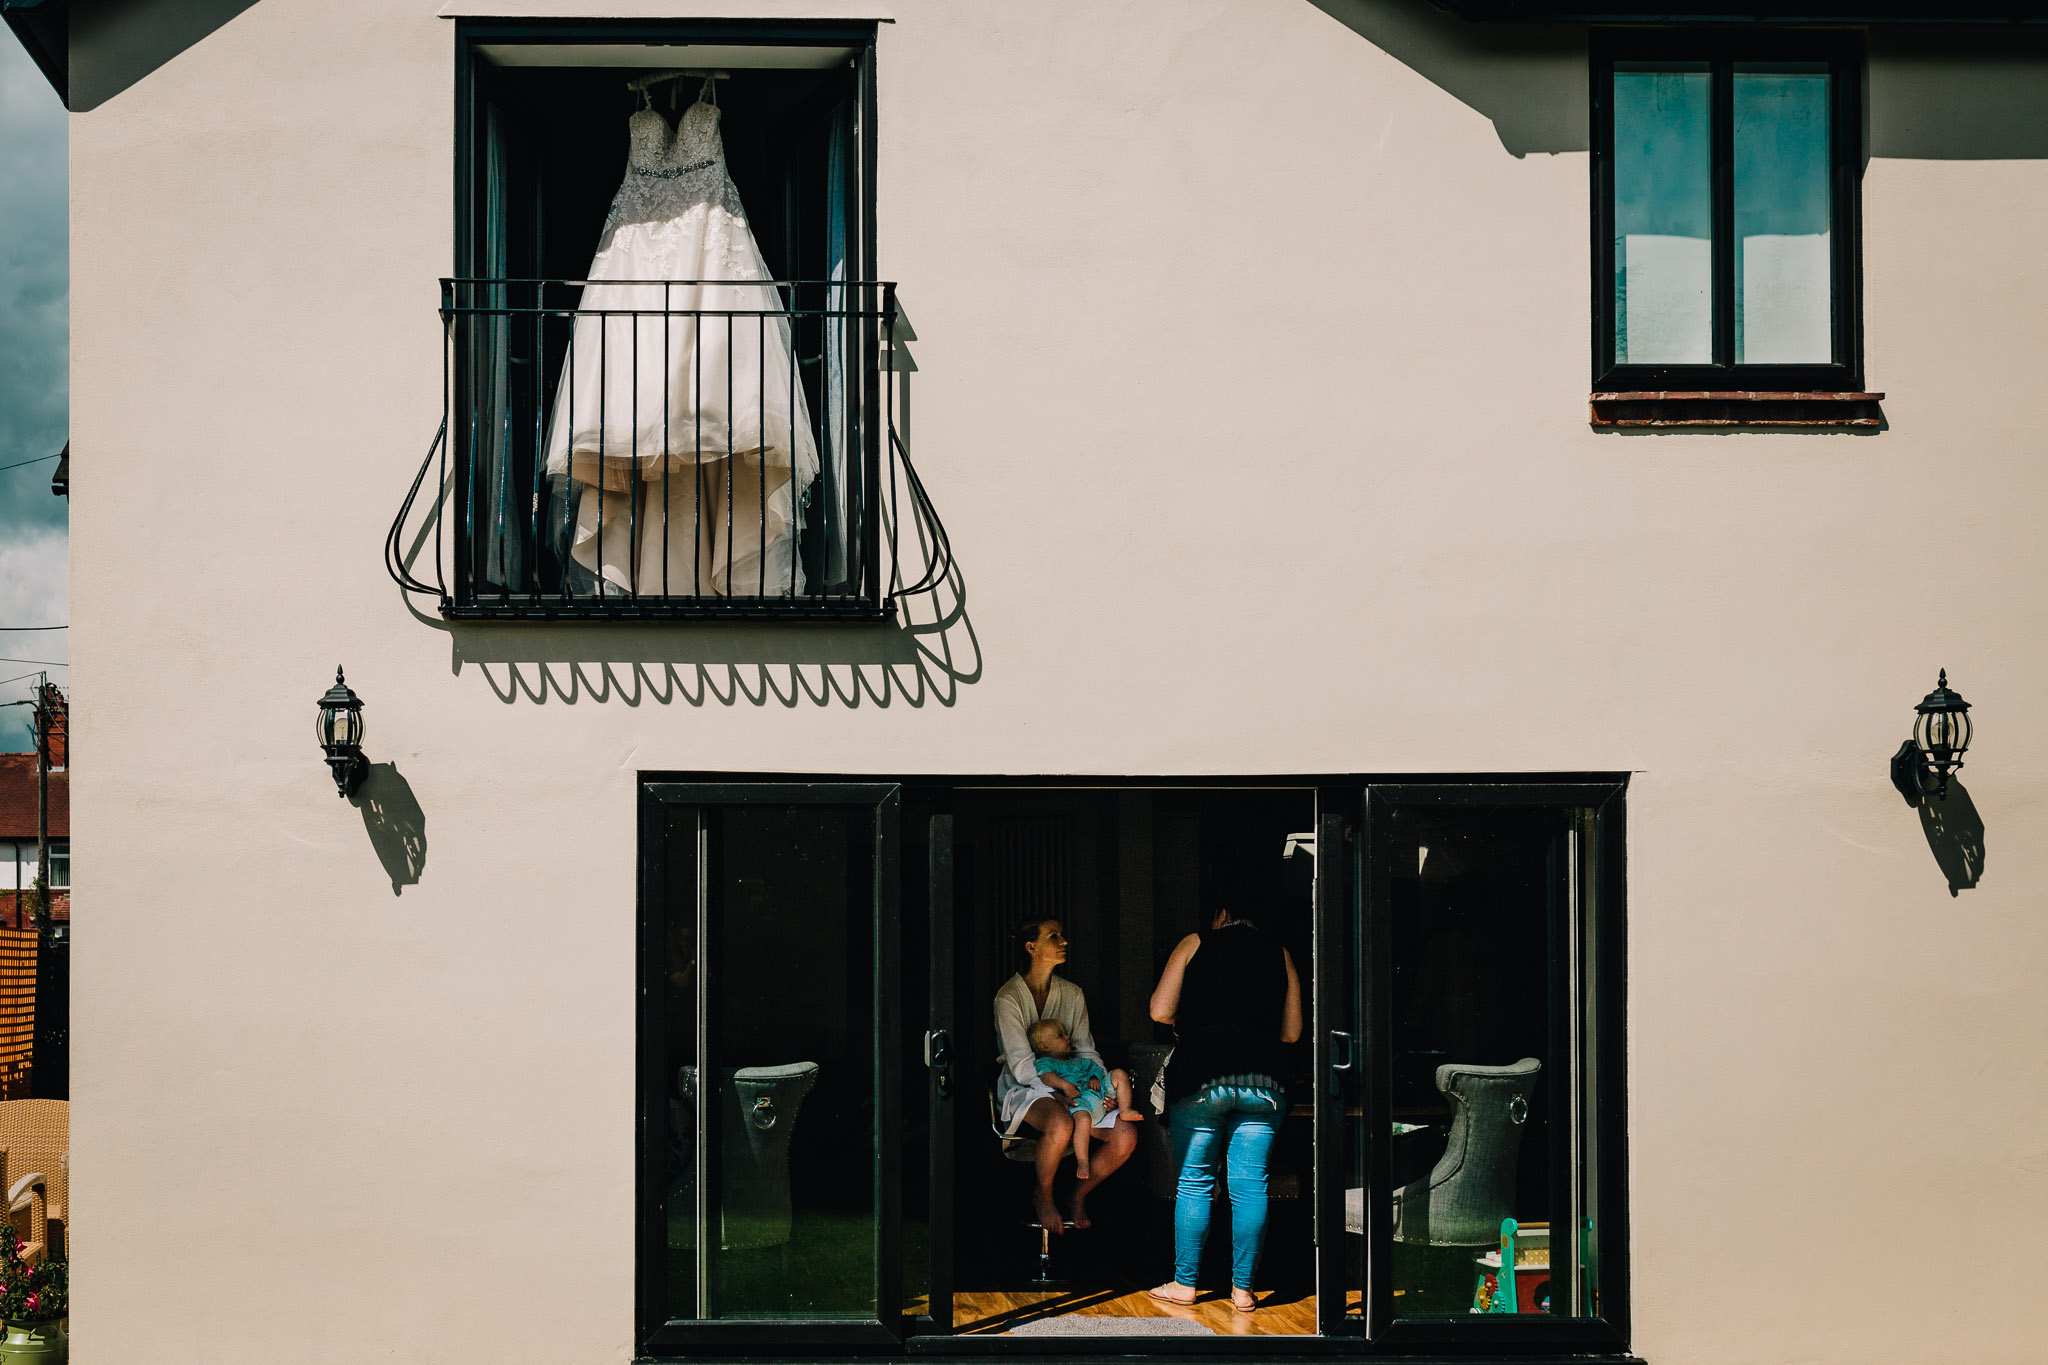 BRIDE GETTING READY AT HOME DRESS HANGING IN UPSTAIRS WINDOW